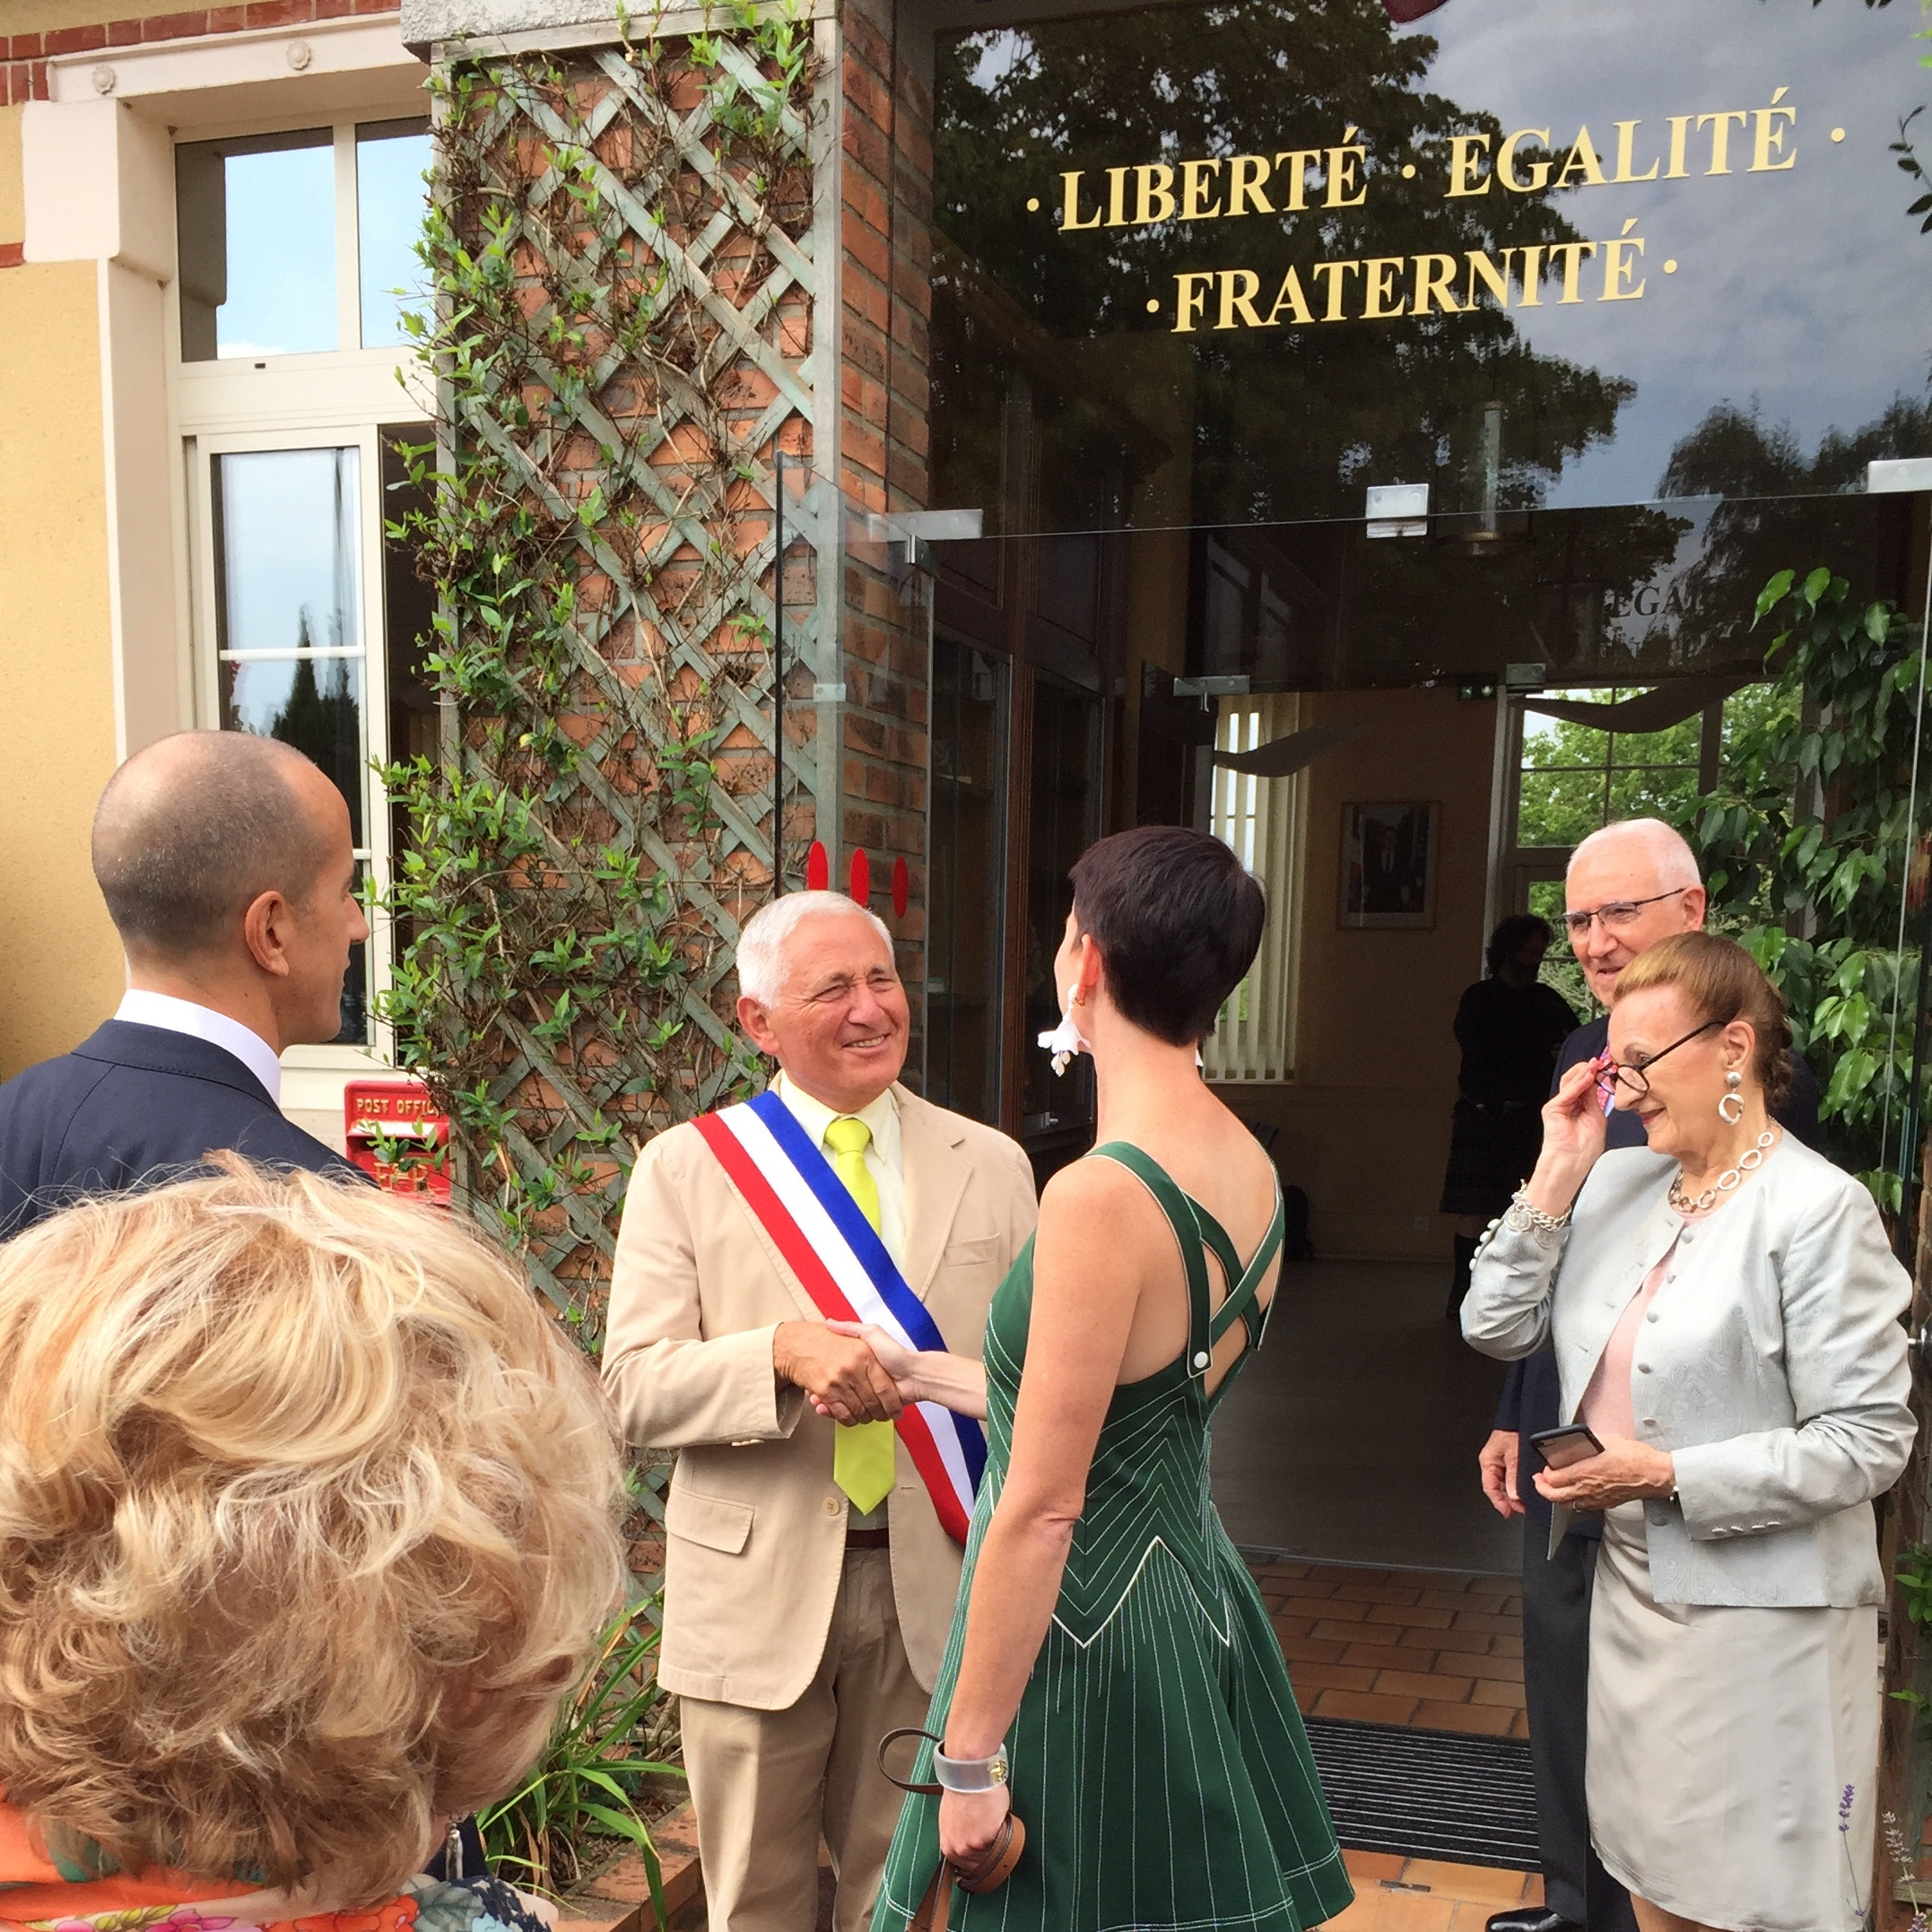 Arriving at the town hall and meeting the mayor on the morning of our French civil wedding. July 24, 2018, Sarge-les-Mans, France.